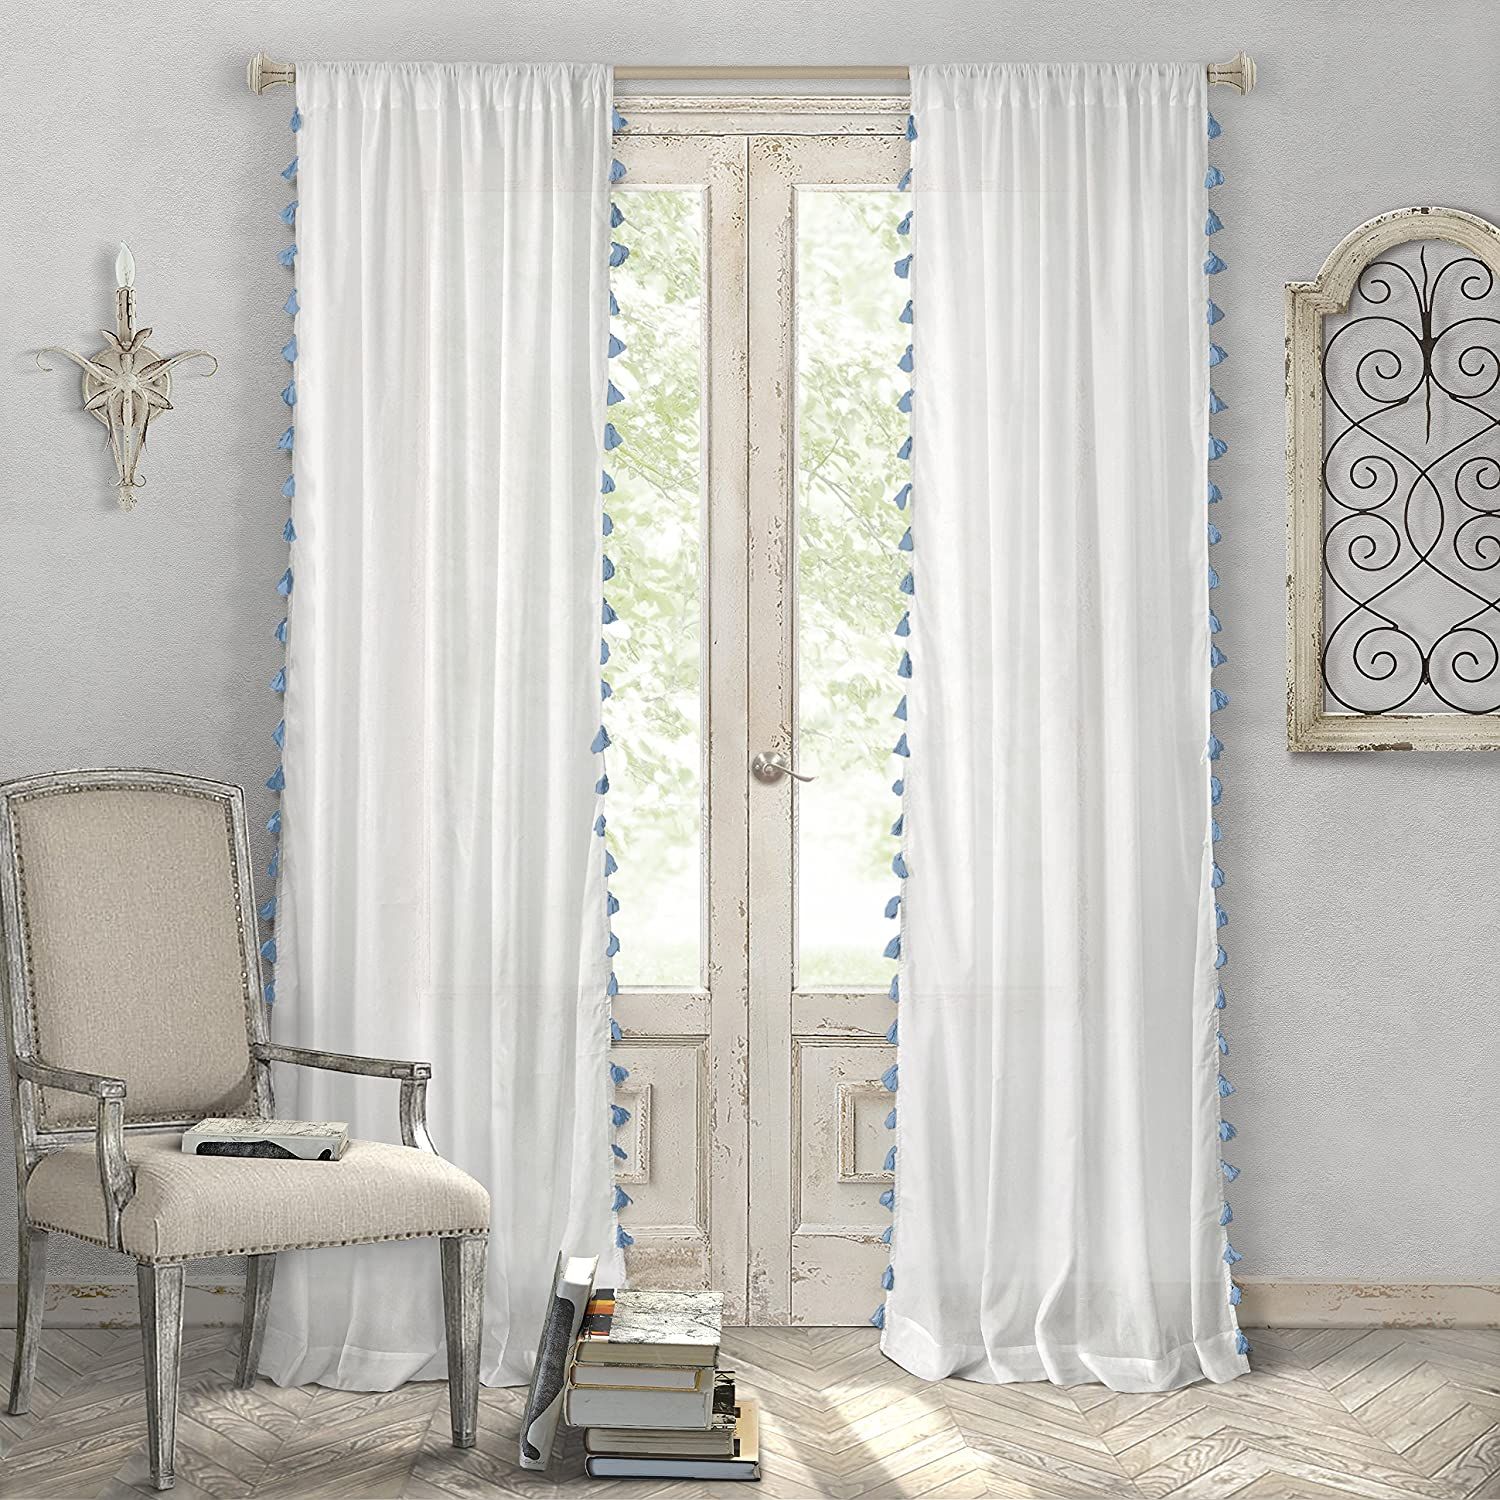 "Elrene Home Fashions Bianca Semi-Sheer Rod Pocket Window Curtain Panel with Tassels, 52"" x 84"" (1, Blue/Taupe"